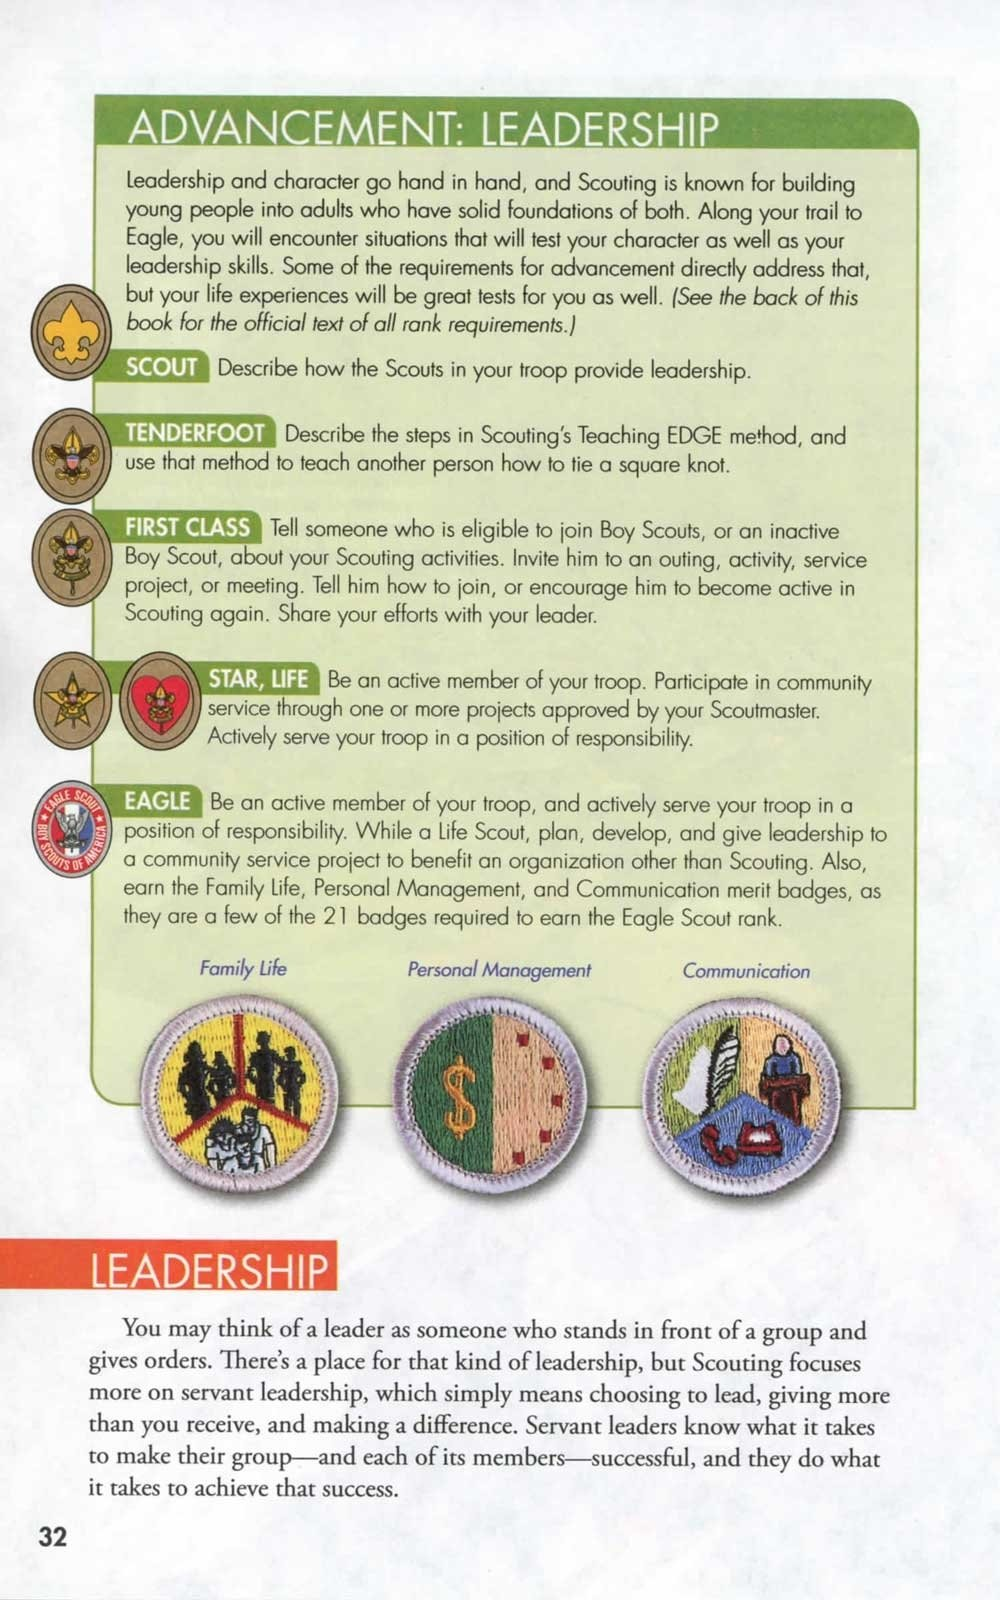 10 Gorgeous Family Life Merit Badge Project Ideas eagle rank scouting with honor 2020